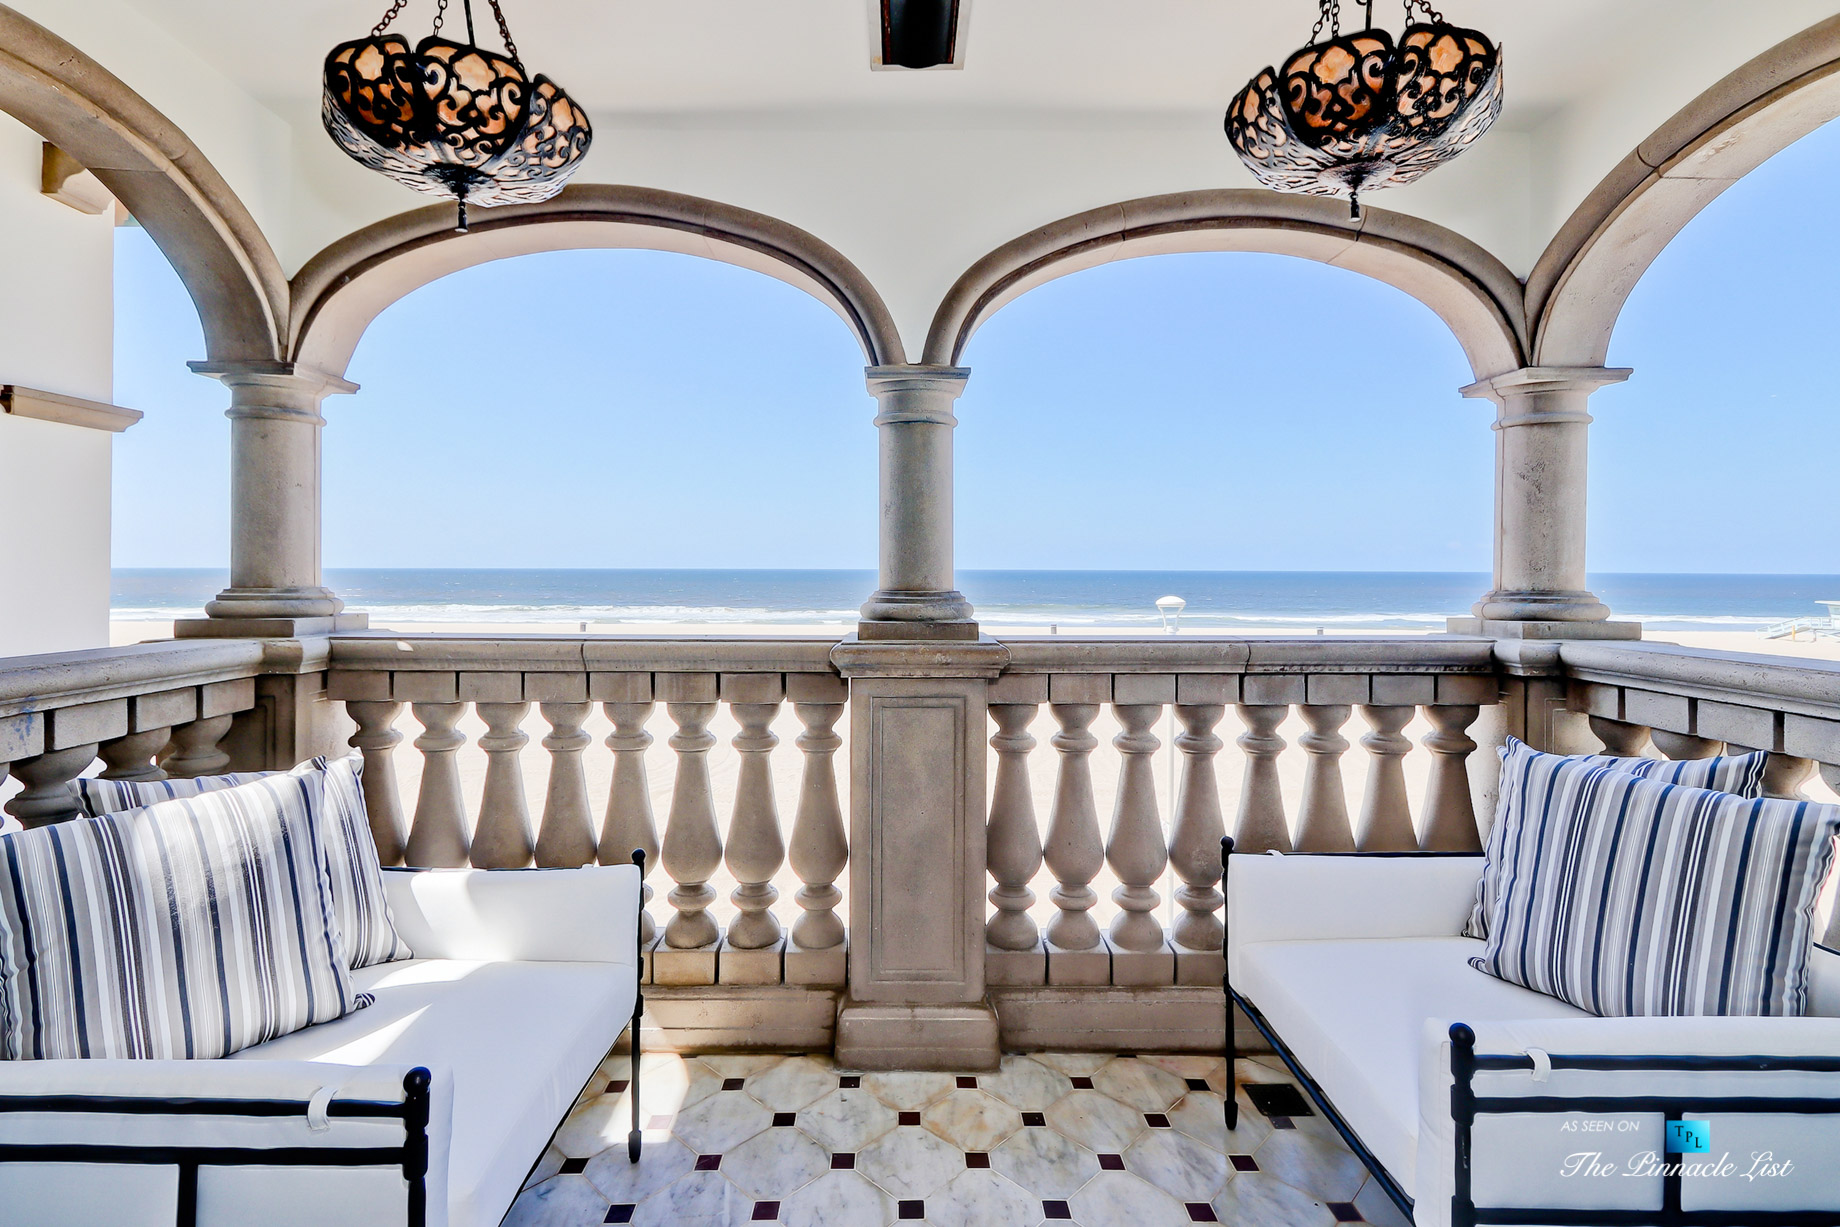 Oceanfront Luxury Living Exemplified - 2806 The Strand, Hermosa Beach, CA, USA - Master Balcony